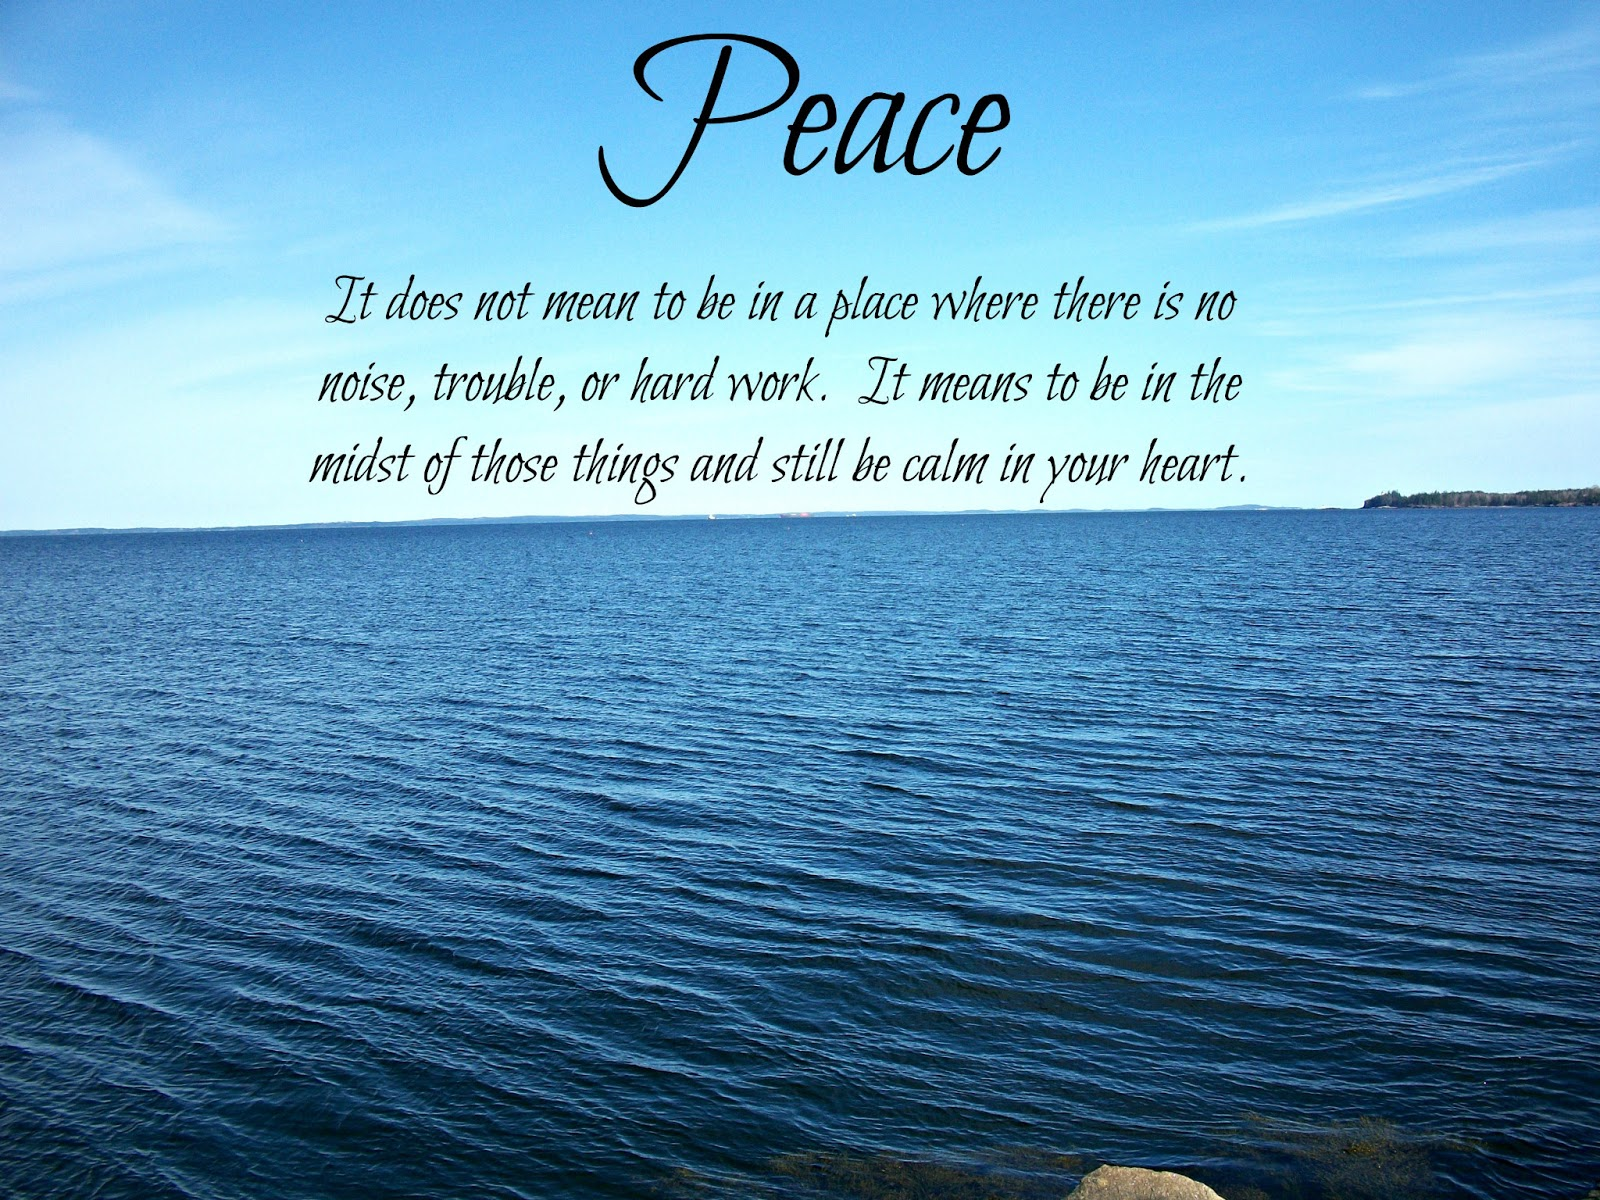 Bible Quotes About Peace Bible Quotes About Peace  Quotes Of The Day